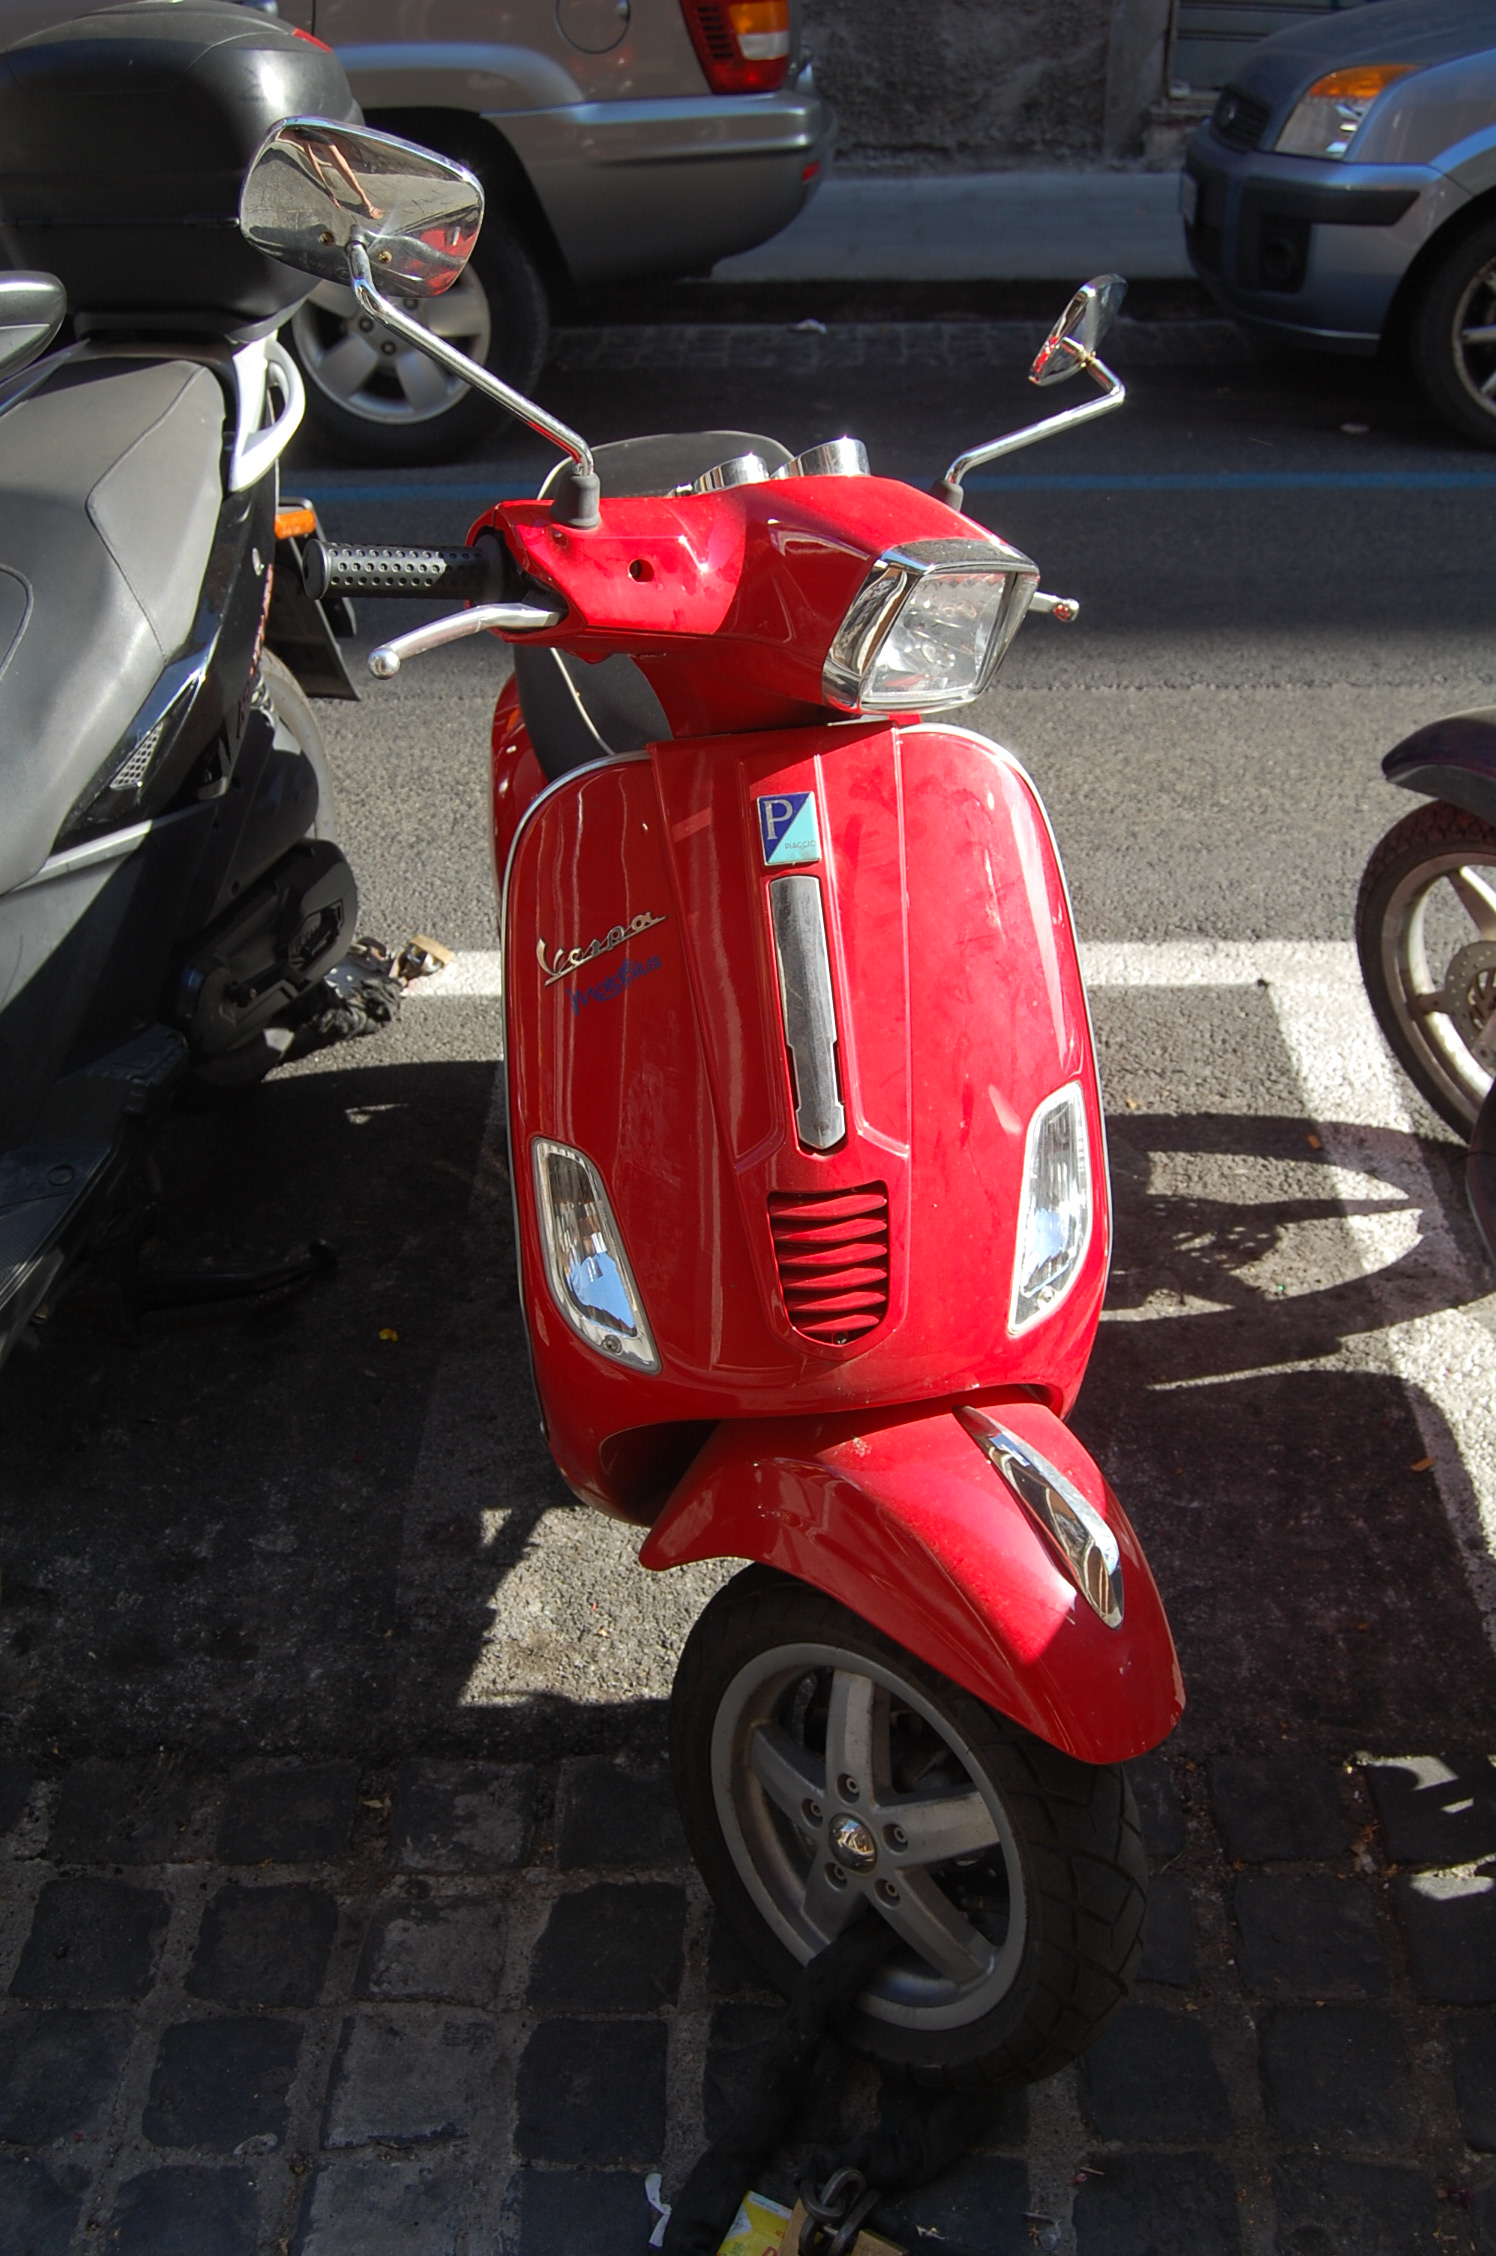 Driving a Scooter in Rome - An American in Rome